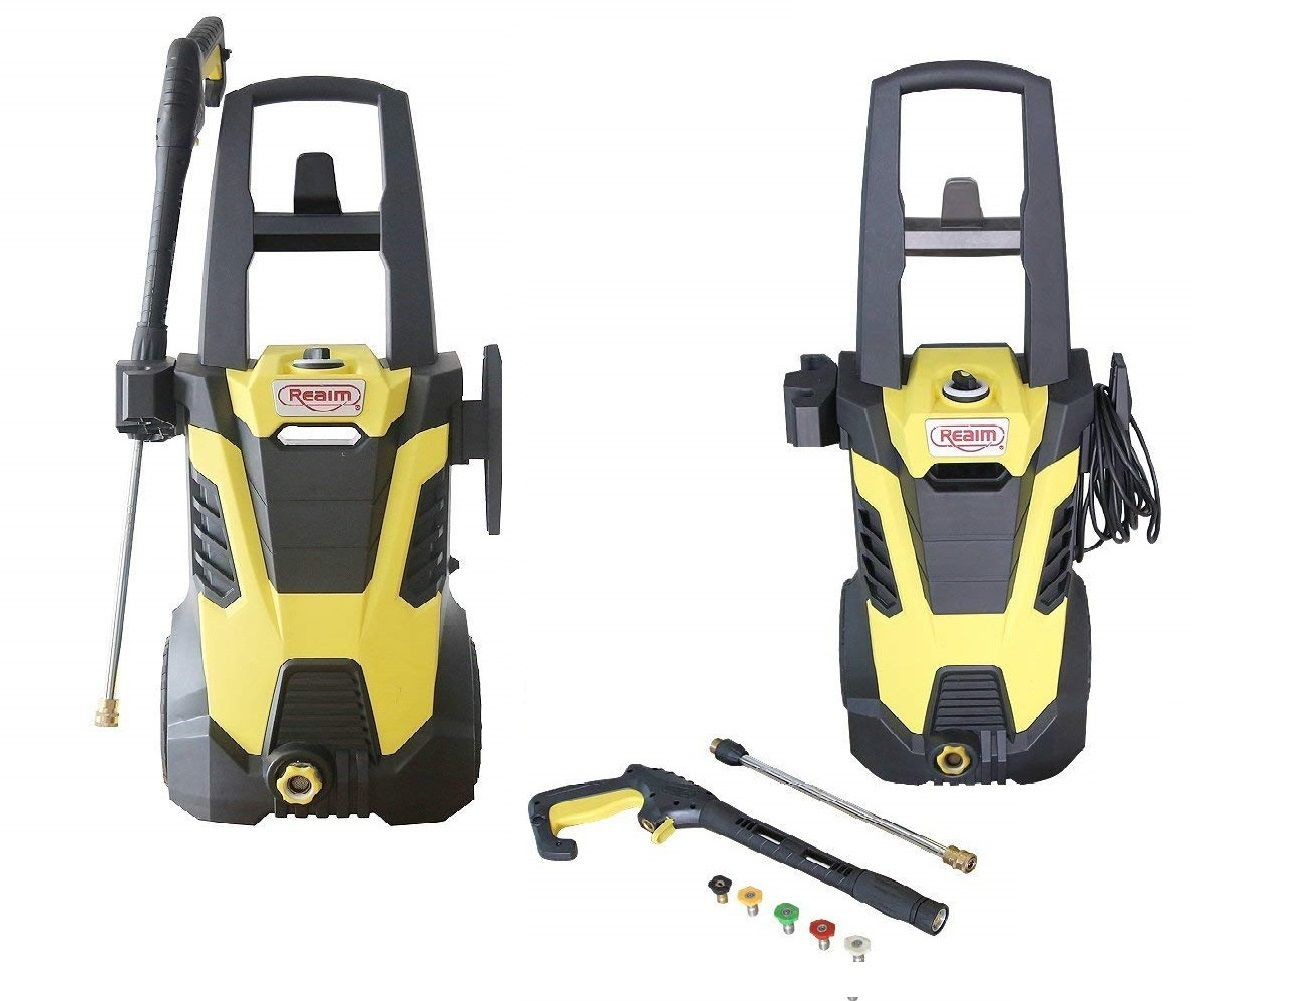 Realm BY02-BIMH Electric Power Pressure Washer